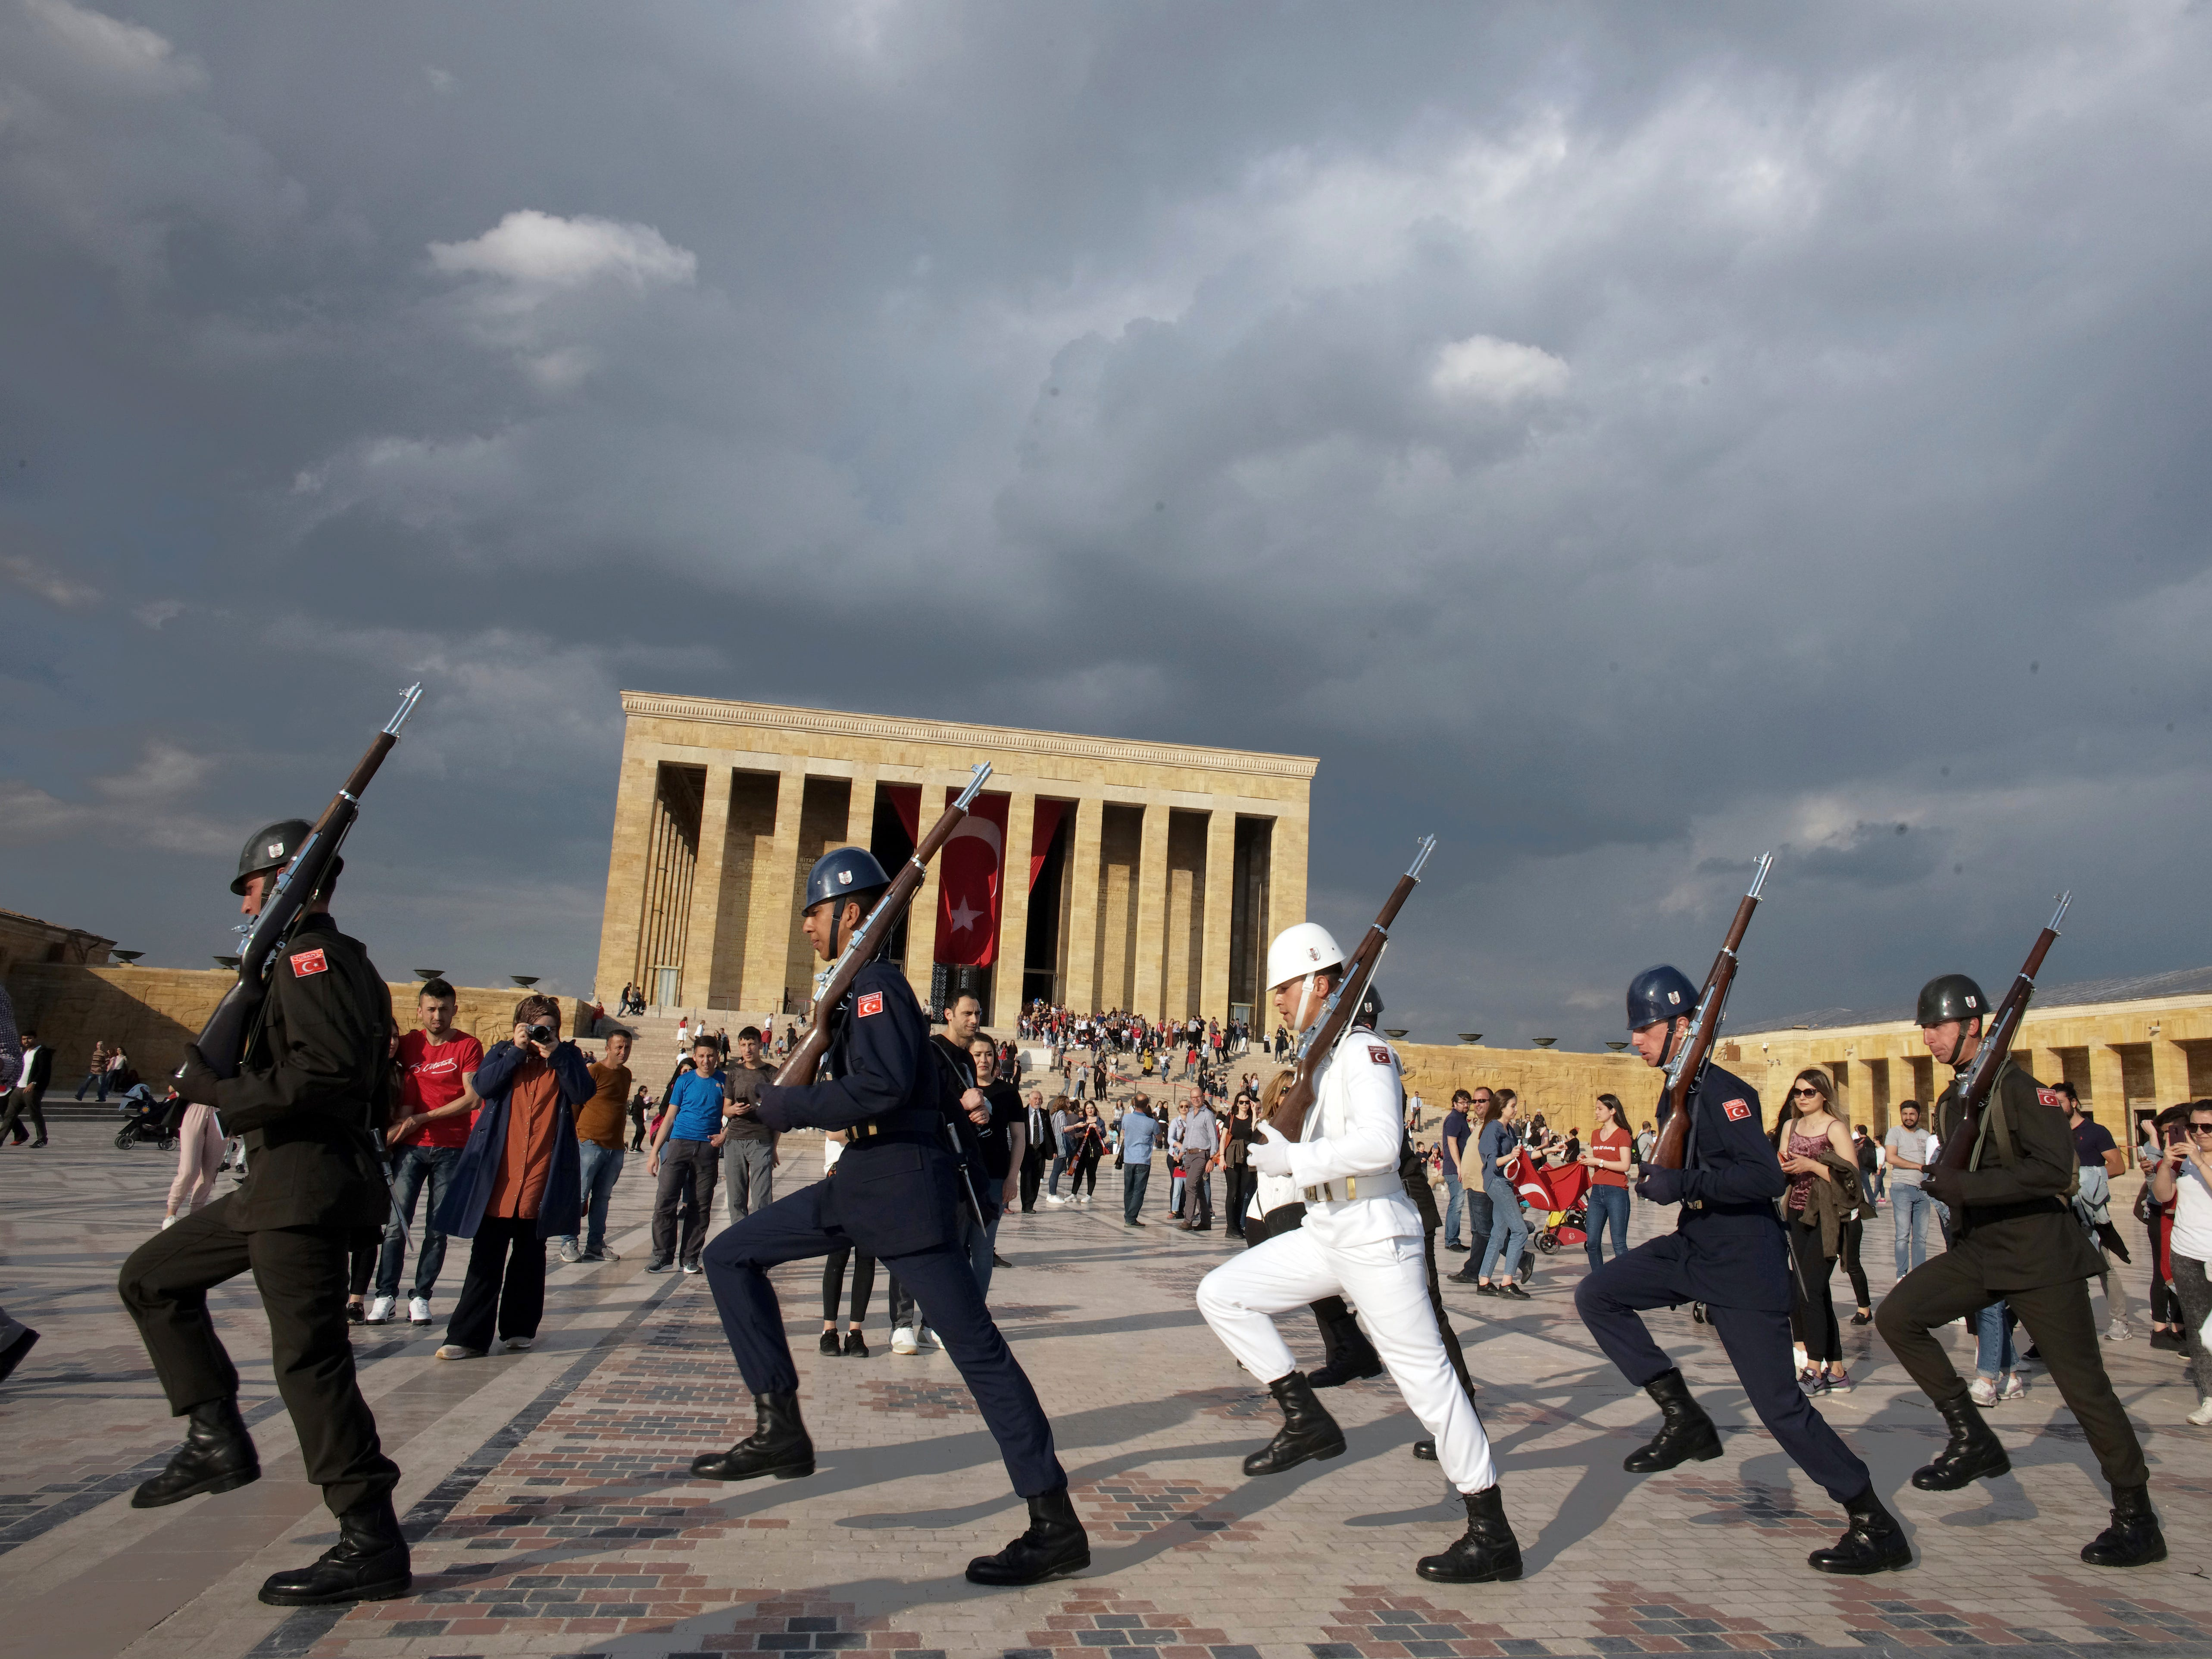 Soldiers march during a changing of the  guard ceremony as thousands of people visit the mausoleum of Mustafa Kemal Ataturk, the founder of modern Turkey. The day marked the 100th anniversary of the start of Turkey's War of Independence under the leadership of young Ottoman army general, Mustafa Kemal (Ataturk), 38, in Ankara, Turkey, Sunday, May 19, 2019.